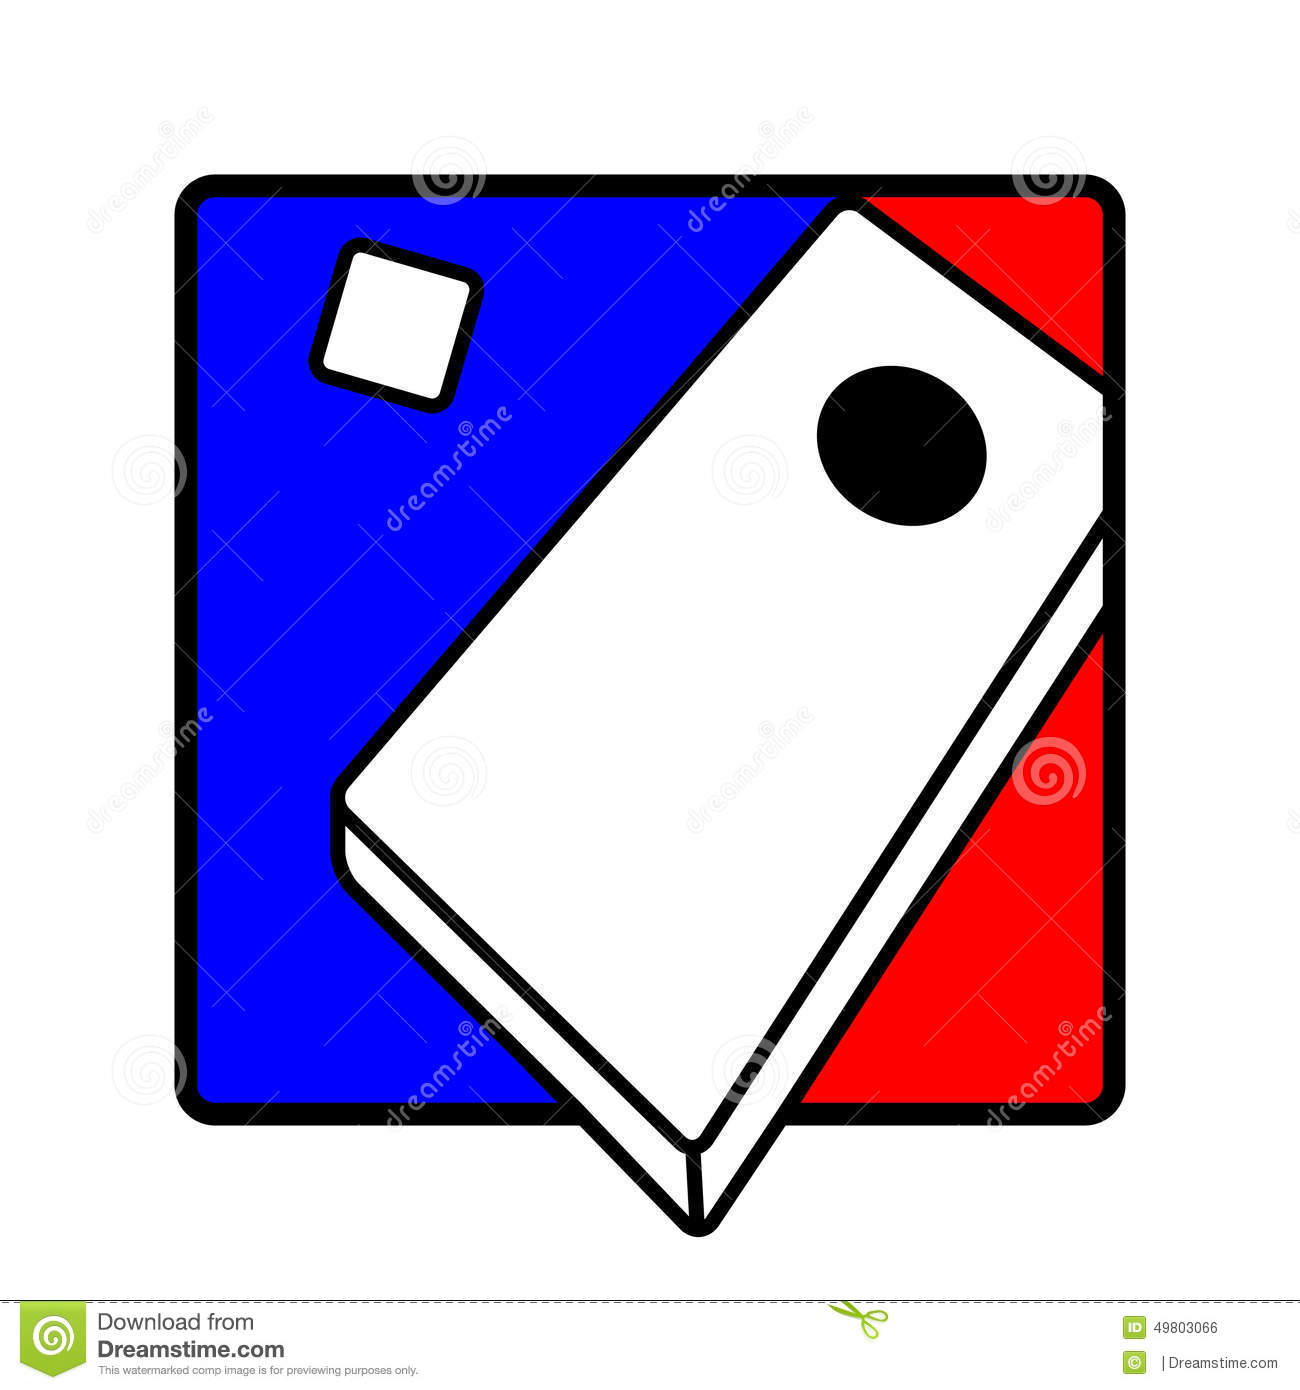 Icon Graphic Of A Corn Hole Game Showing-Icon Graphic Of A Corn Hole Game Showing The Board And Bag-17